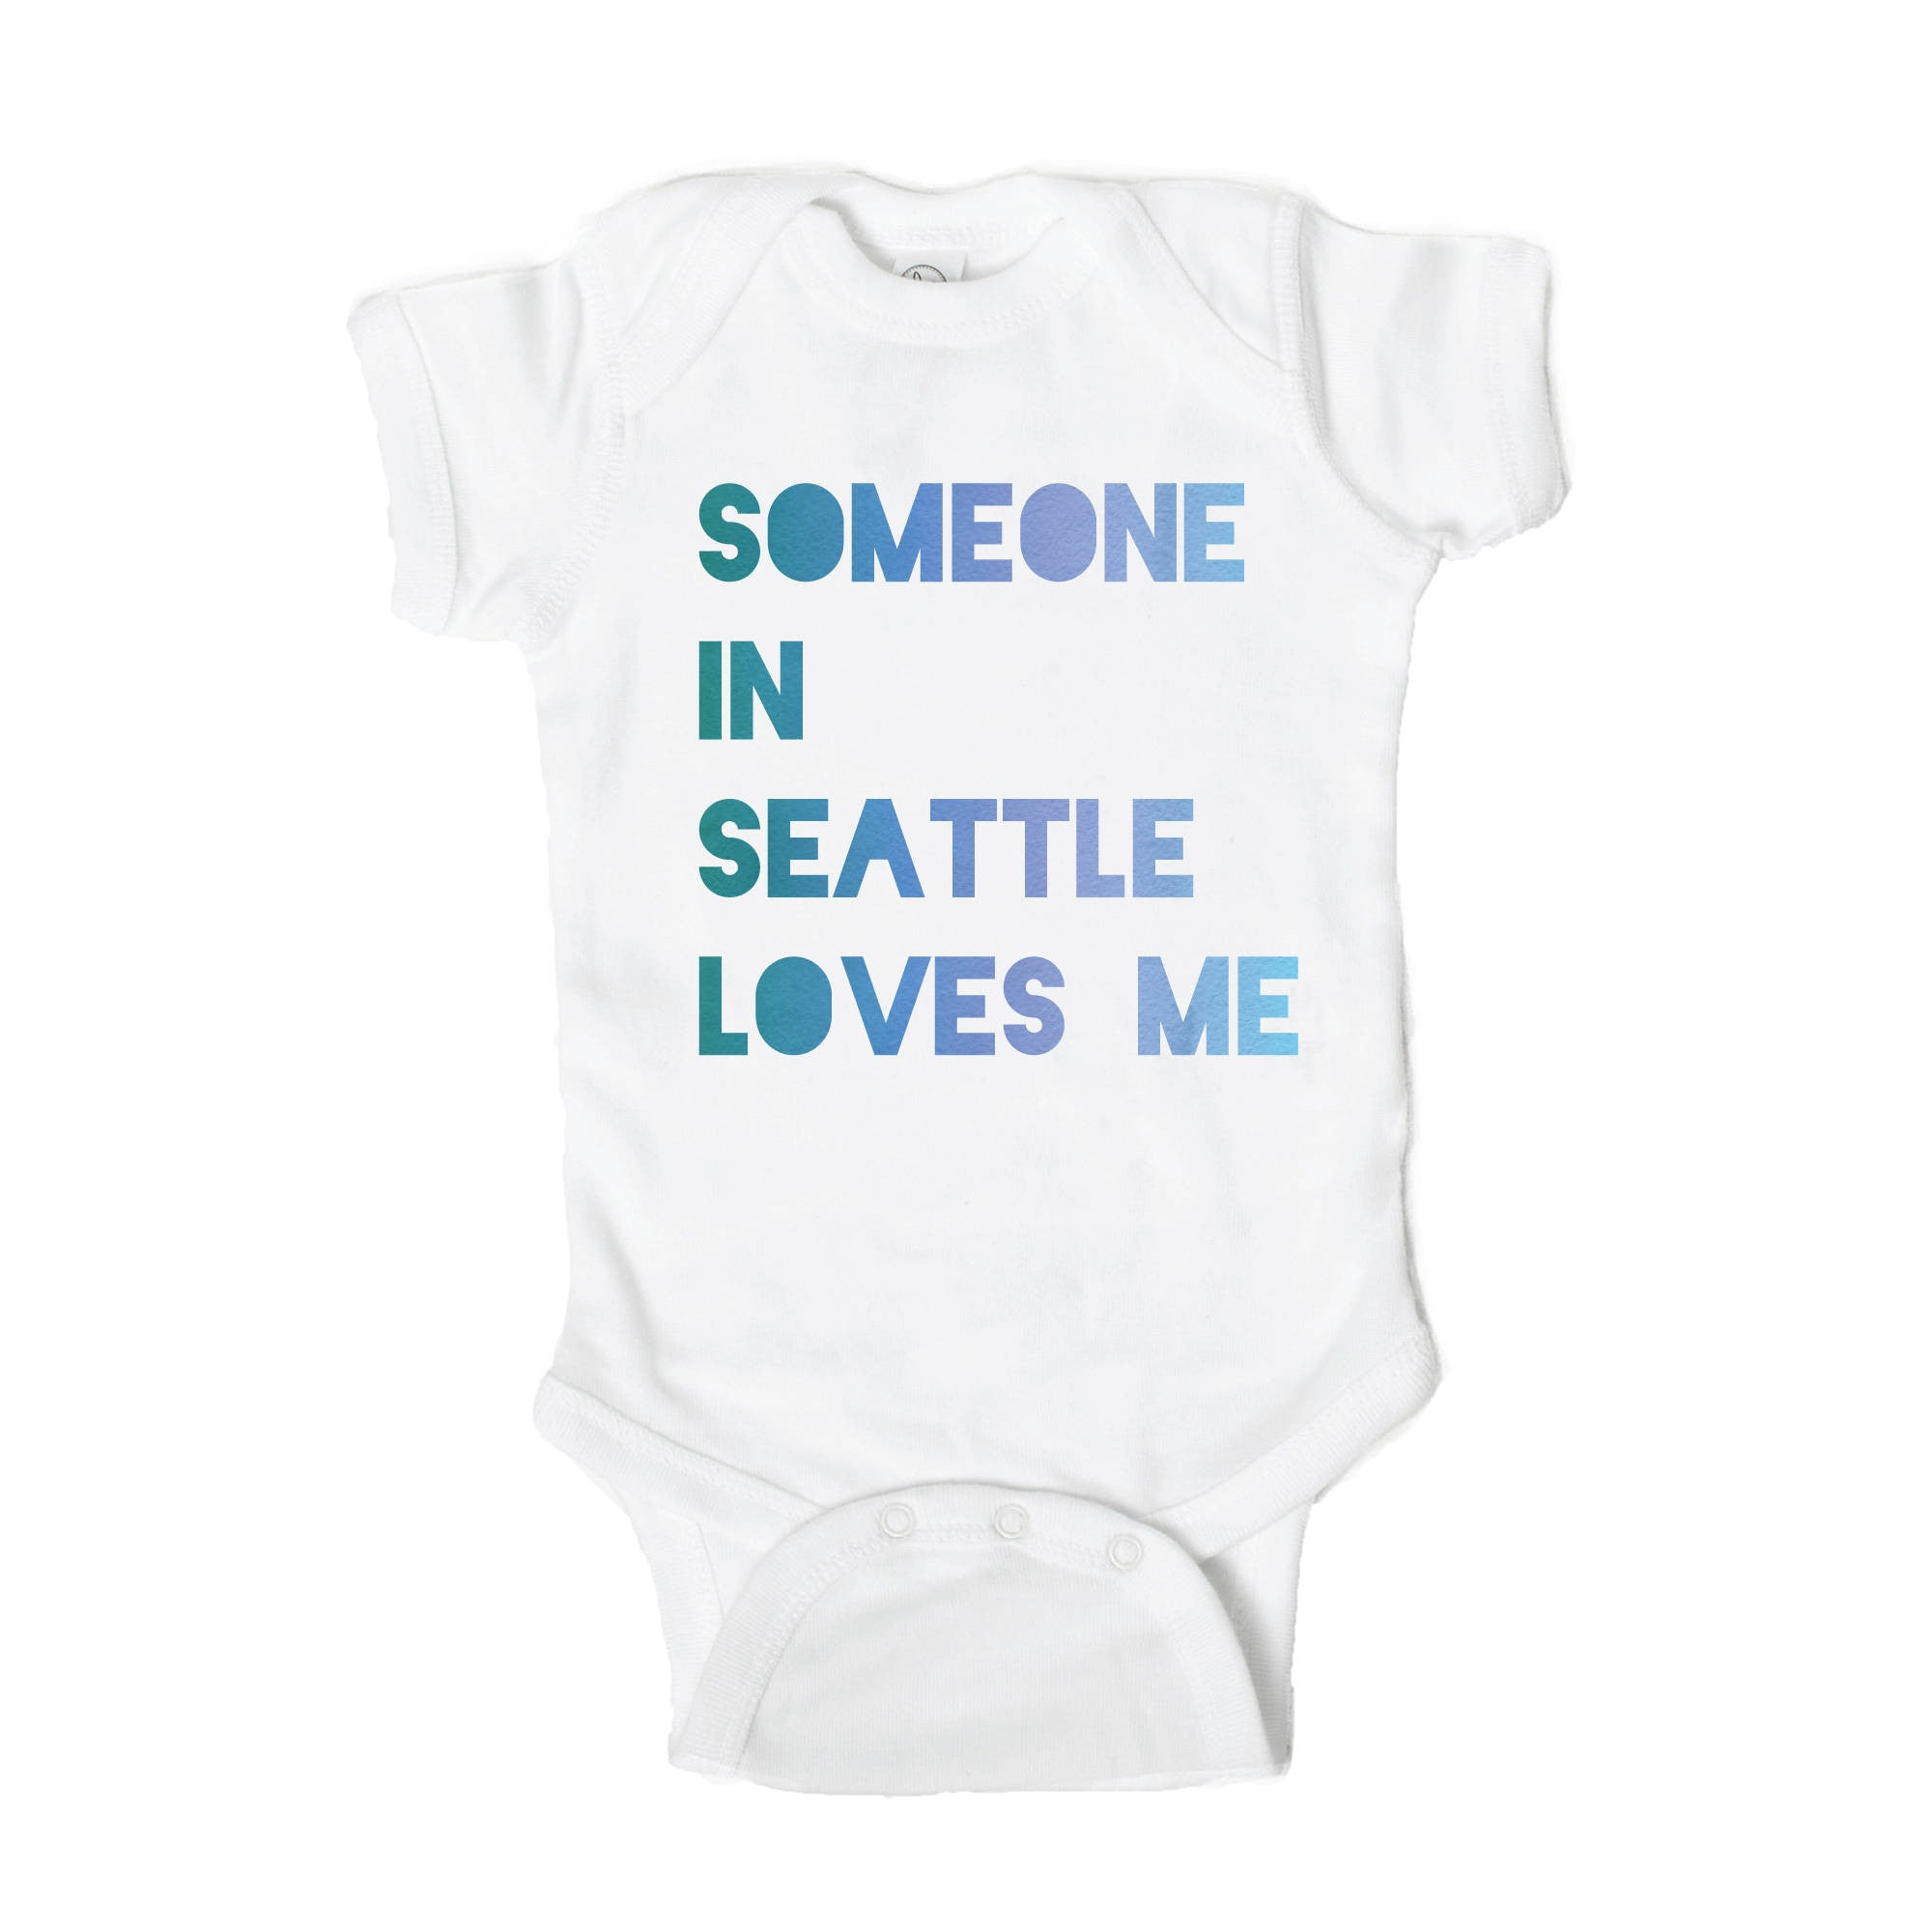 Someone Loves Me in Seattle Baby Onesie